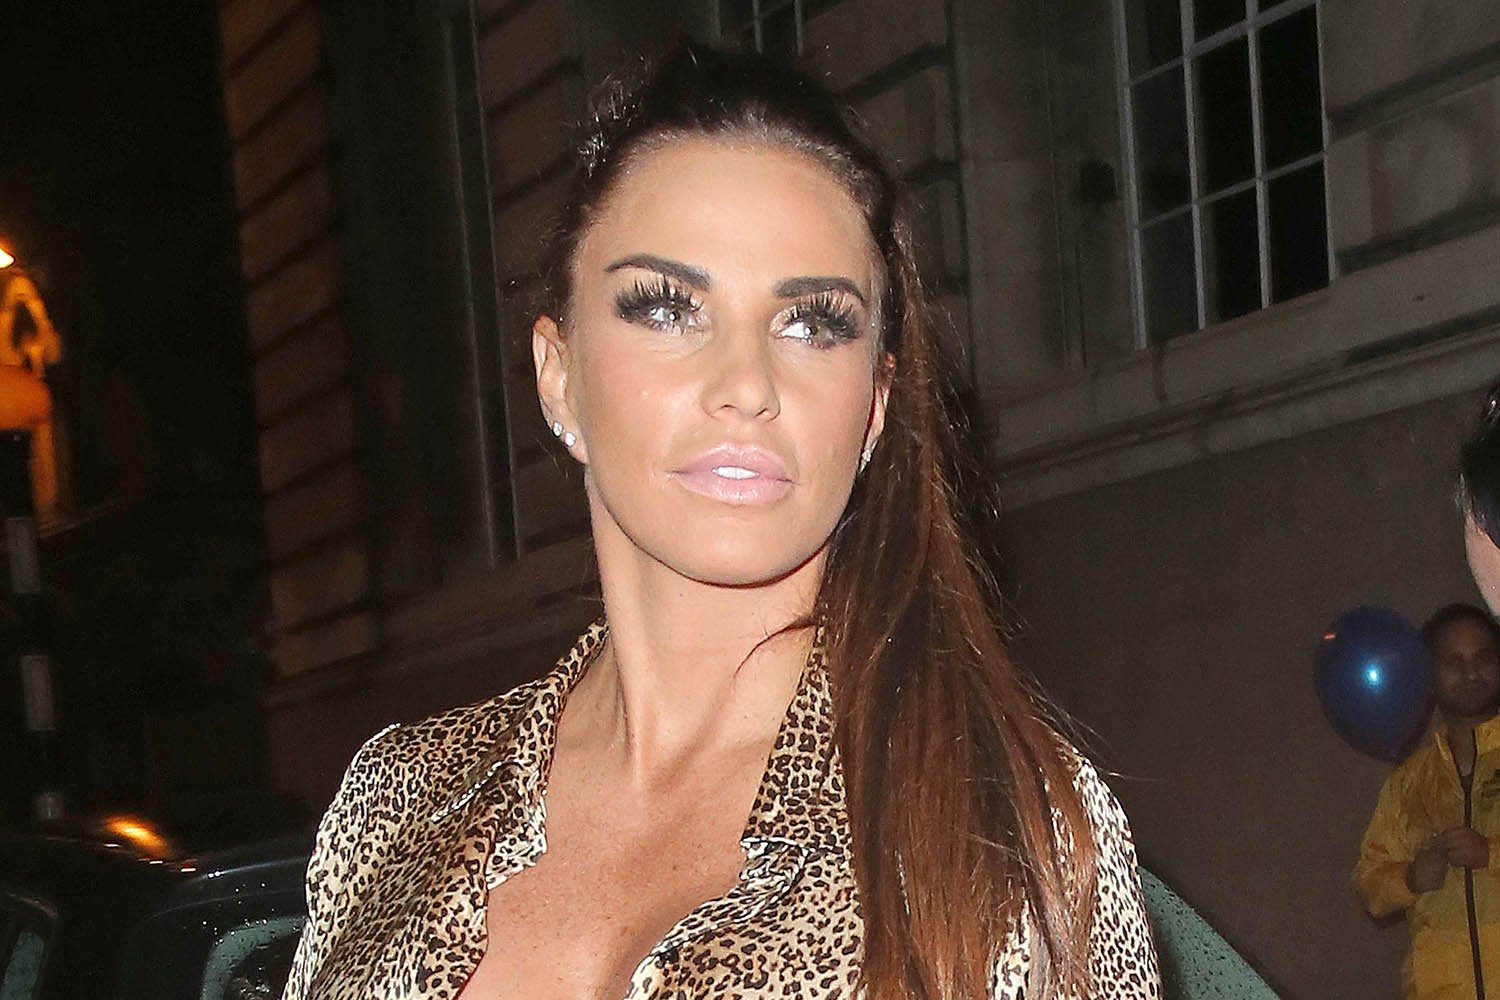 Katie Price praises exes Kieran Hayler and Peter Andre for being 'great dads'